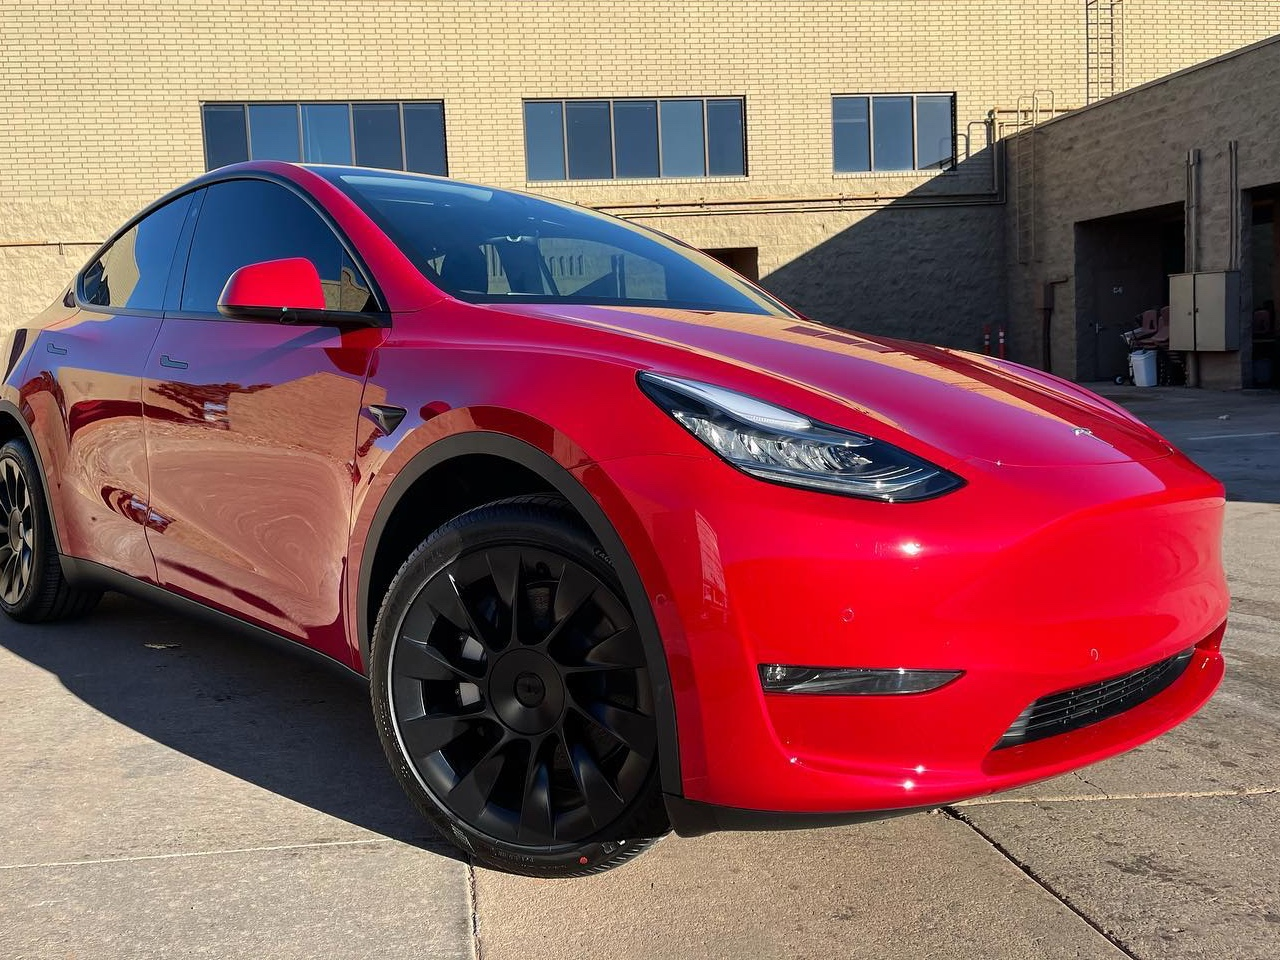 Tesla Model Y front view Full Front End PPF + Ceramic Coating + Ceramic Tint!